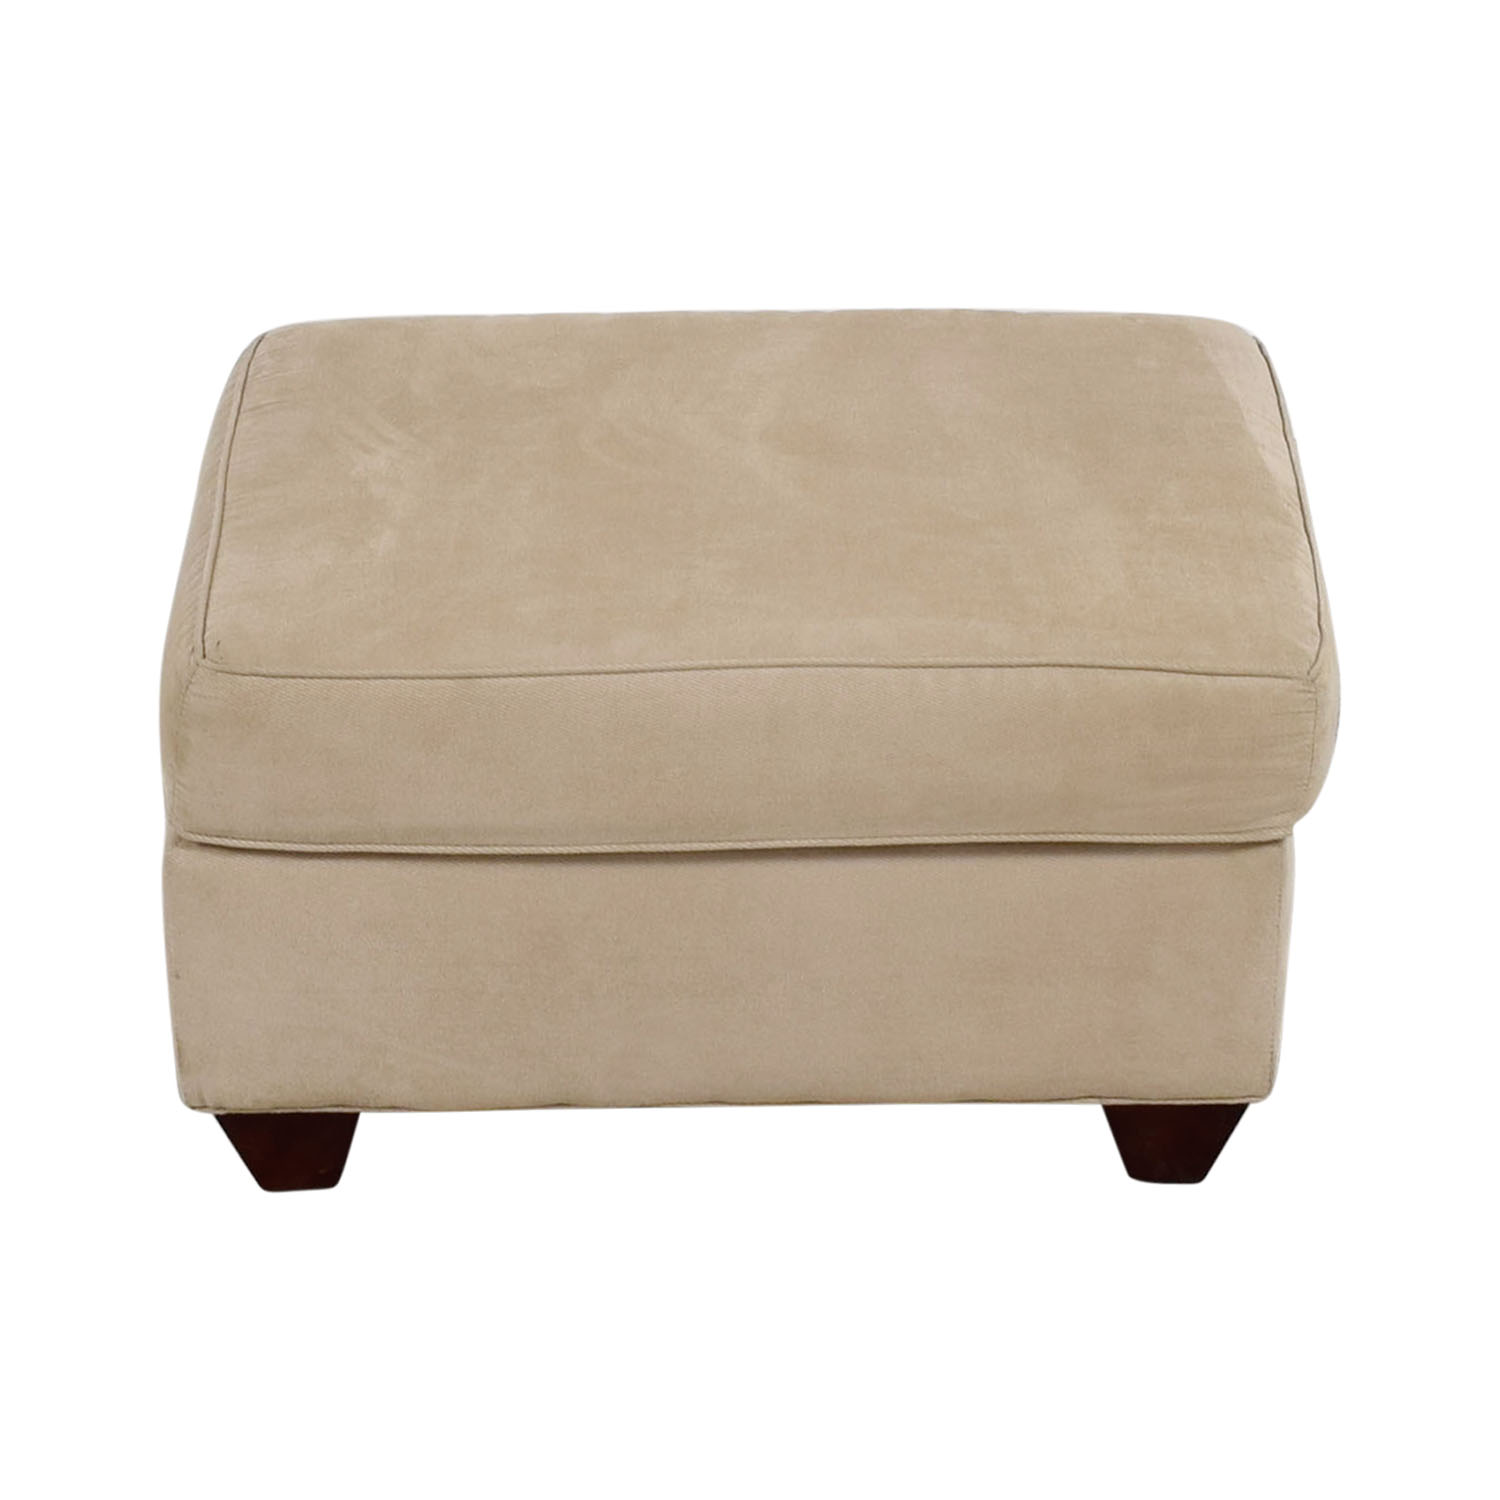 Raymour & Flanigan Raymour & Flanigan Neutral Ottoman on sale